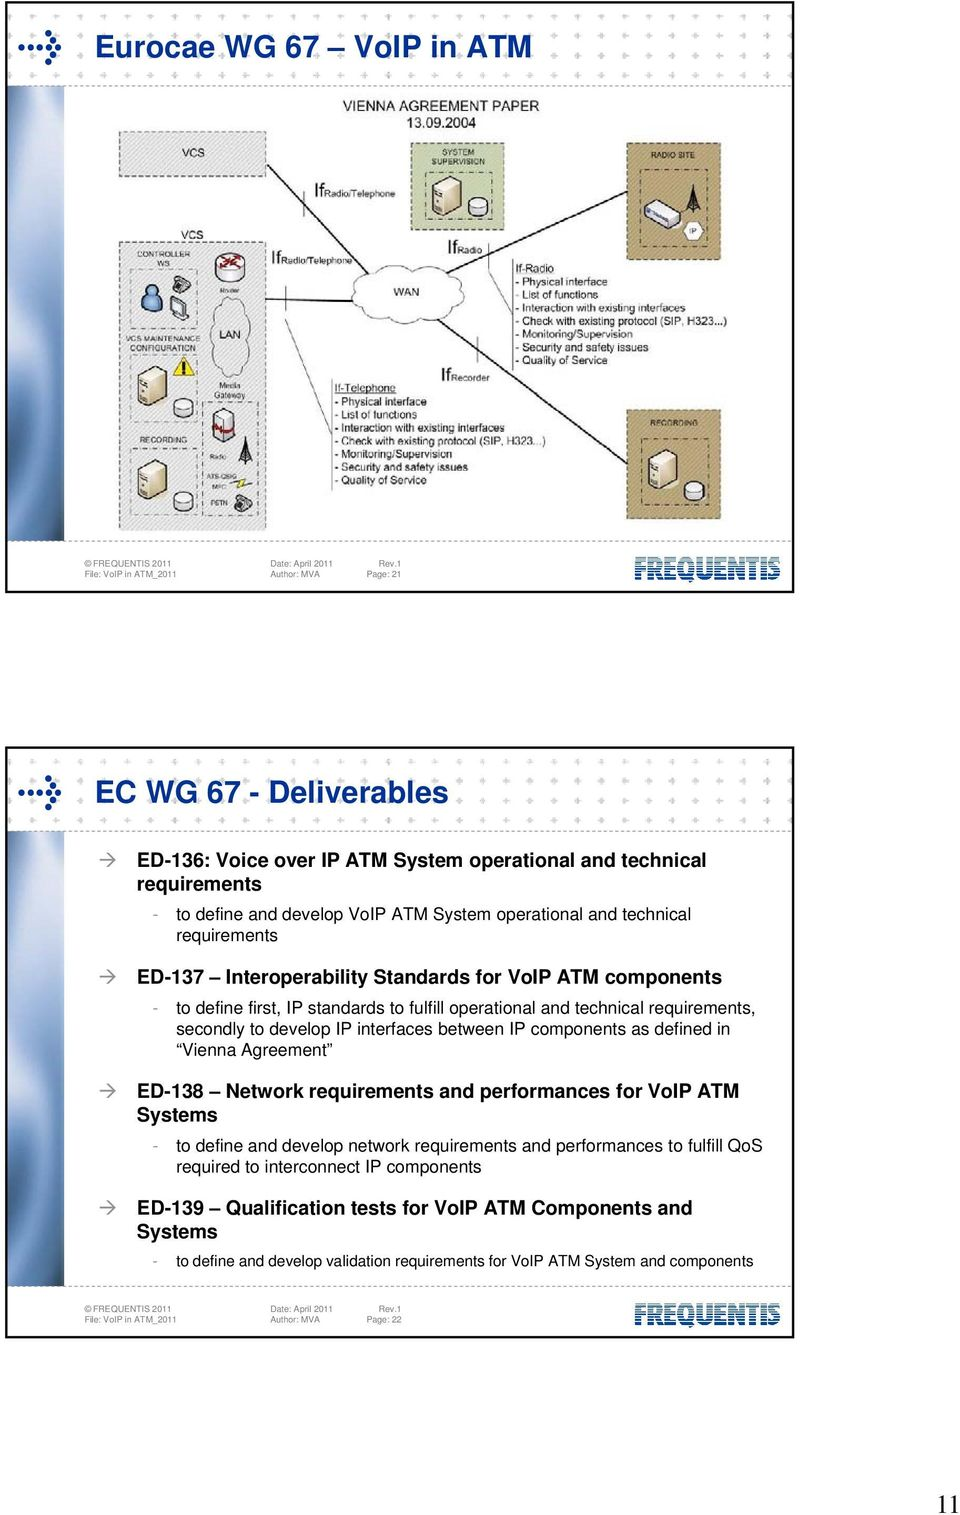 Atc Networks Are The Application Area For Voip In Atm Pdf Simulator Software Engineering Case Study Develop Ip Interfaces Between Components As Defined Vienna Agreement Ed 138 Network Requirements